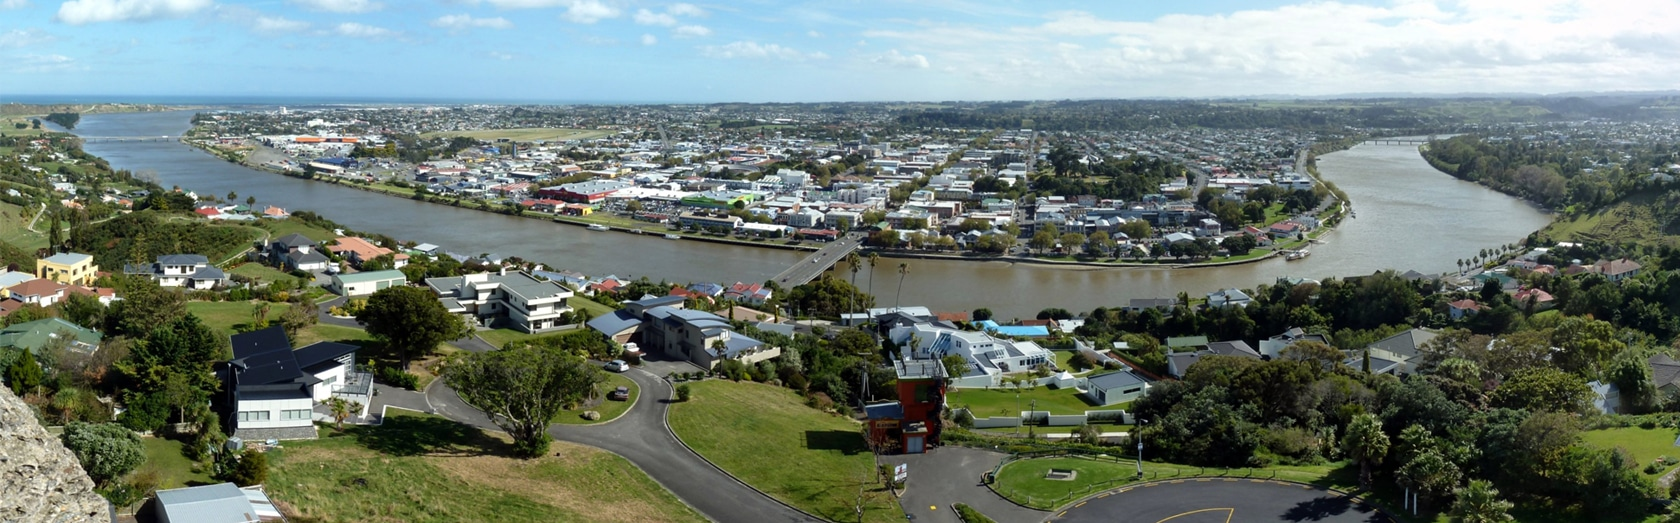 Wanganui city slider